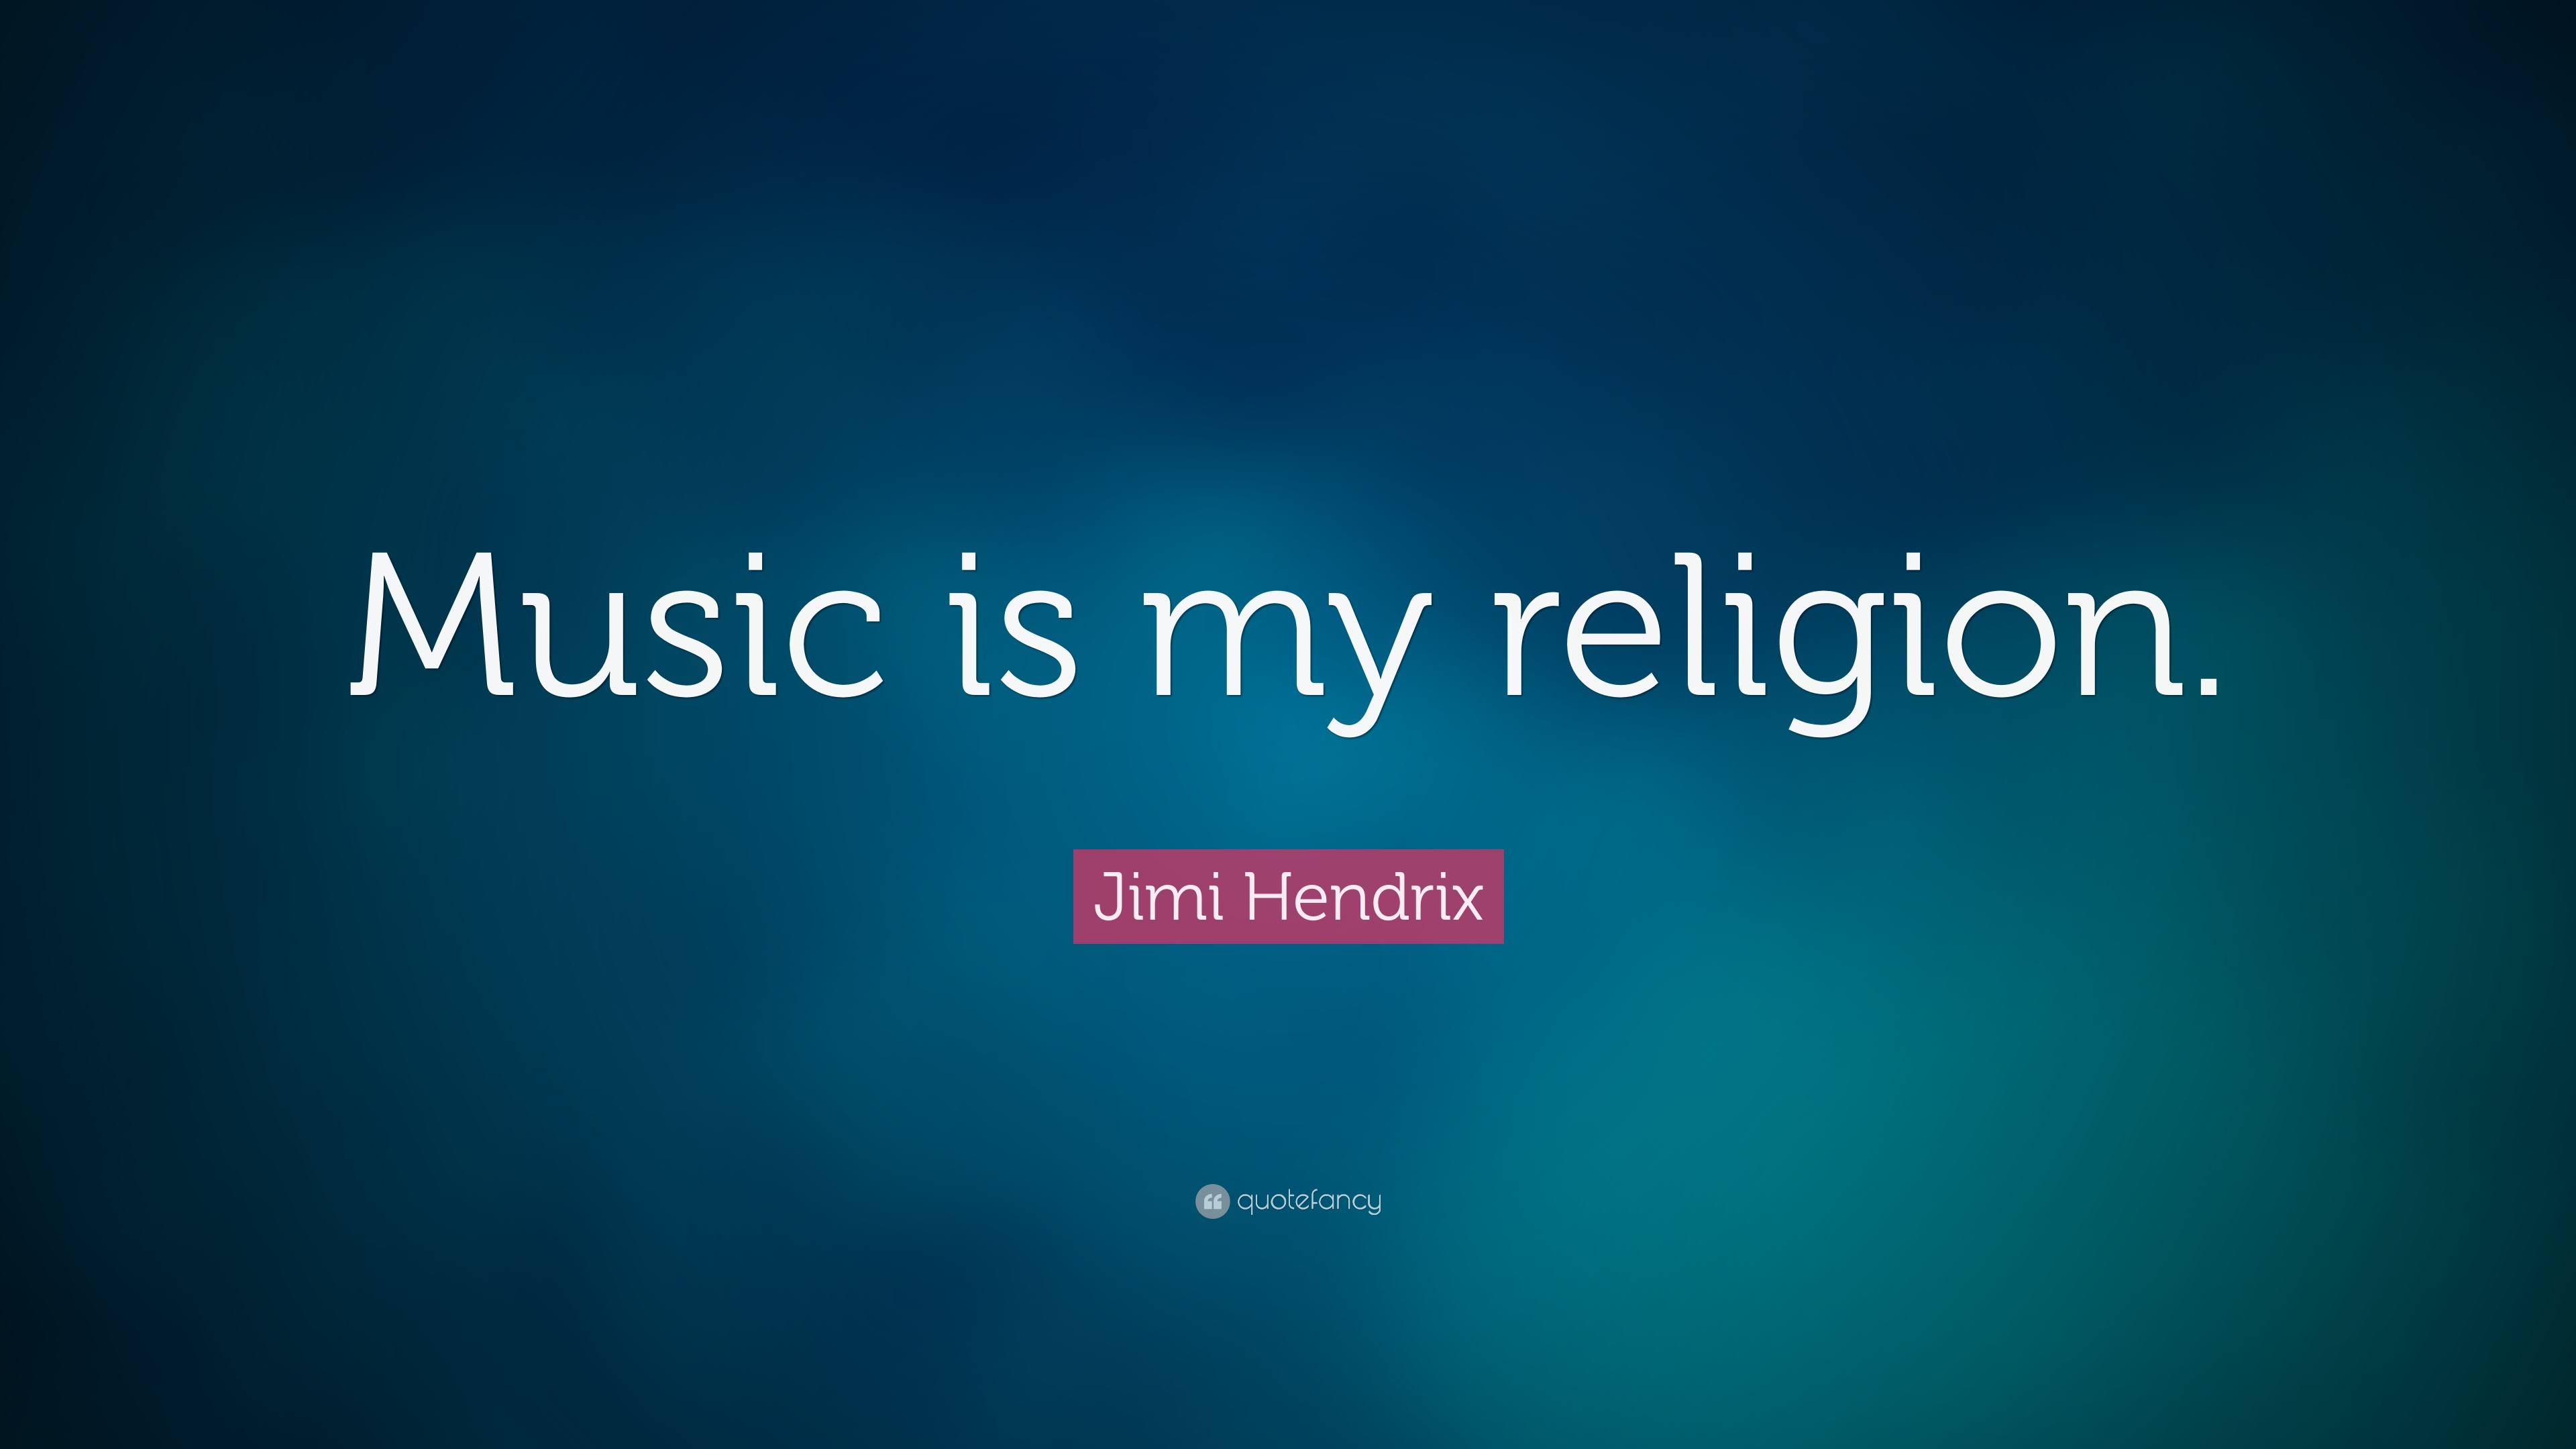 music quotes wallpapers - photo #20